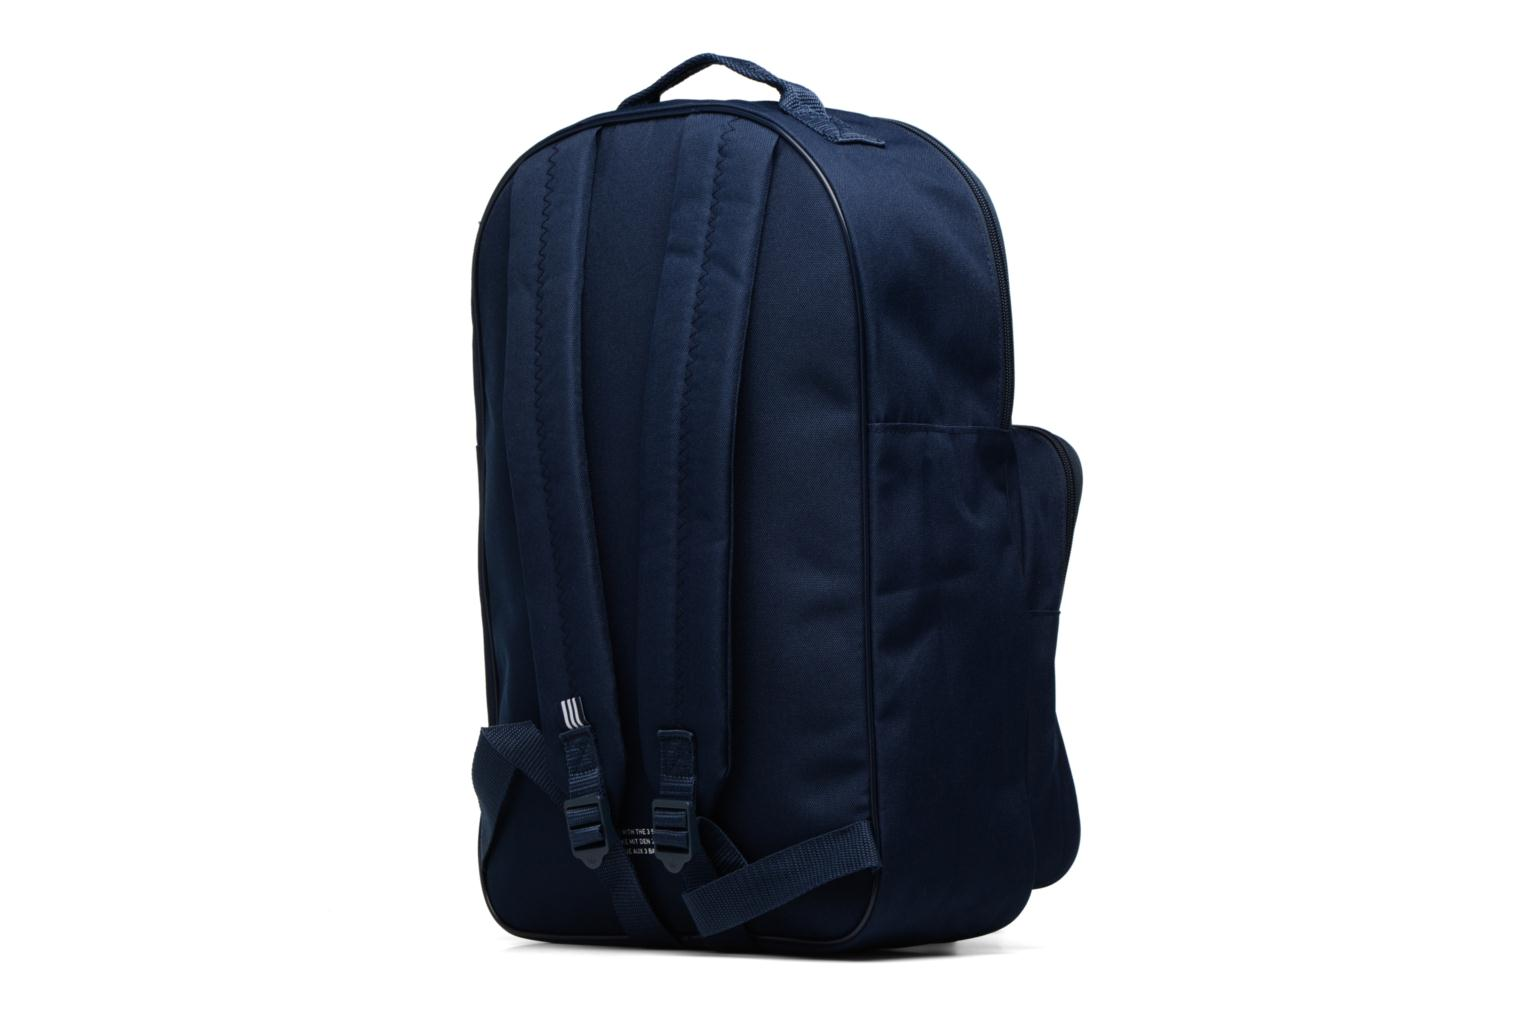 BP CLASS CASUAL Bleu navy collégial